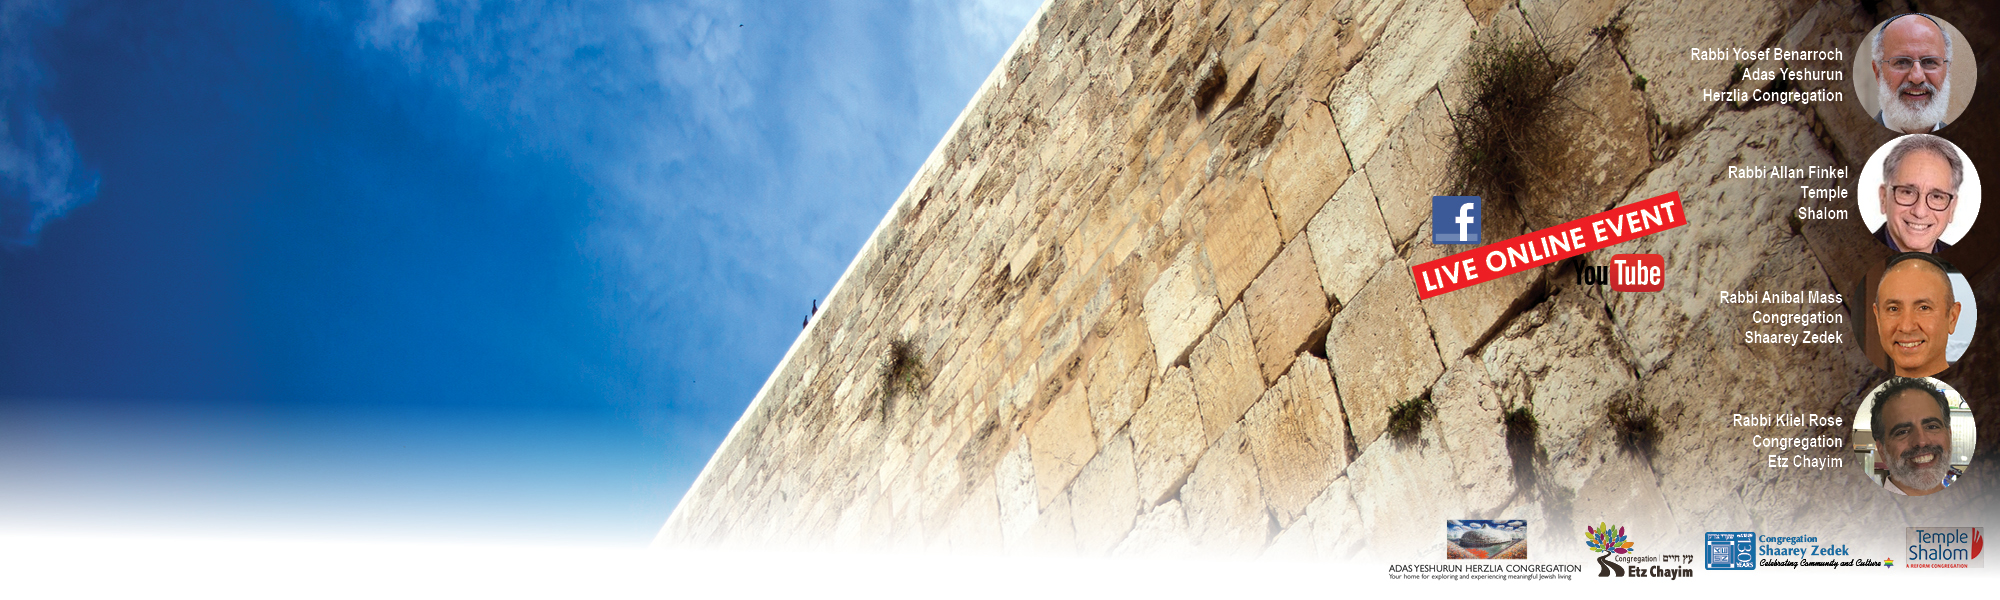 """<a href=""""https://www.szwinnipeg.ca/event/2021-07-18-Tisha-B'Av-Rabbis-Panel""""                                     target="""""""">                                                                 <span class=""""slider_title"""">                                     Tisha B'Av Rabbis' Panel<br>Sun, Jul 18, 10:30 AM CDT                                </span>                                                                 </a>                                                                                                                                                                                       <span class=""""slider_description"""">Tisha B'Av, the ninth day of the Hebrew month of Av, is an annual fast day in Judaism, on which a number of disasters in Jewish history occurred, primarily the destruction of both the First and Second Temples. Tisha B'Av is regarded as the saddest day on the Jewish calendar. Join us in the morning of Tisha B'Av as our rabbis reflect together on this important day - Tisha B'Av: What It Means To Me Today.</span>                                                                                     <a href=""""https://www.szwinnipeg.ca/event/2021-07-18-Tisha-B'Av-Rabbis-Panel"""" class=""""slider_link""""                             target="""""""">                             Learn More                            </a>"""